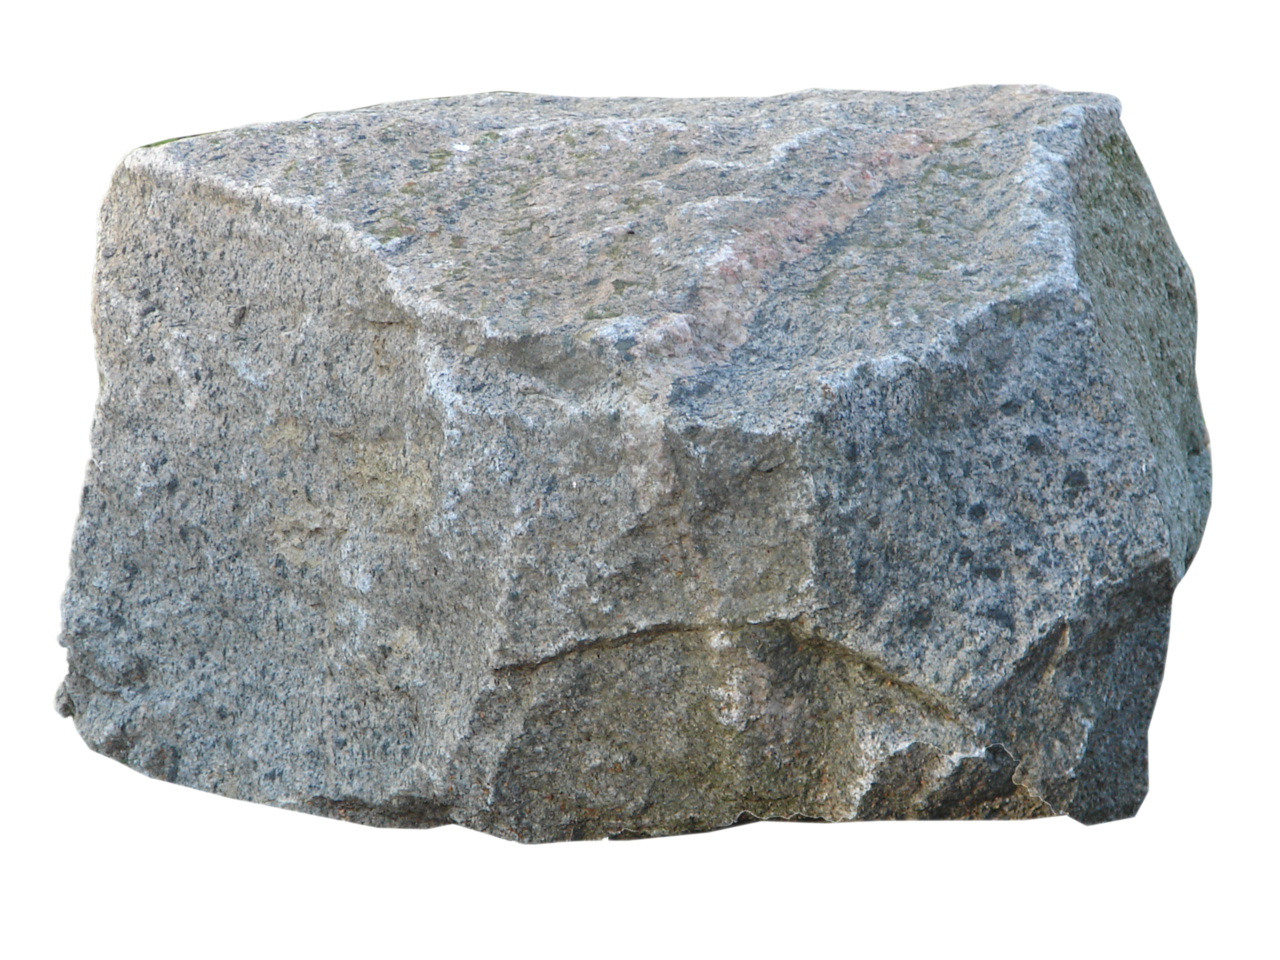 Stone transparent images pluspng. Rocks png image freeuse library